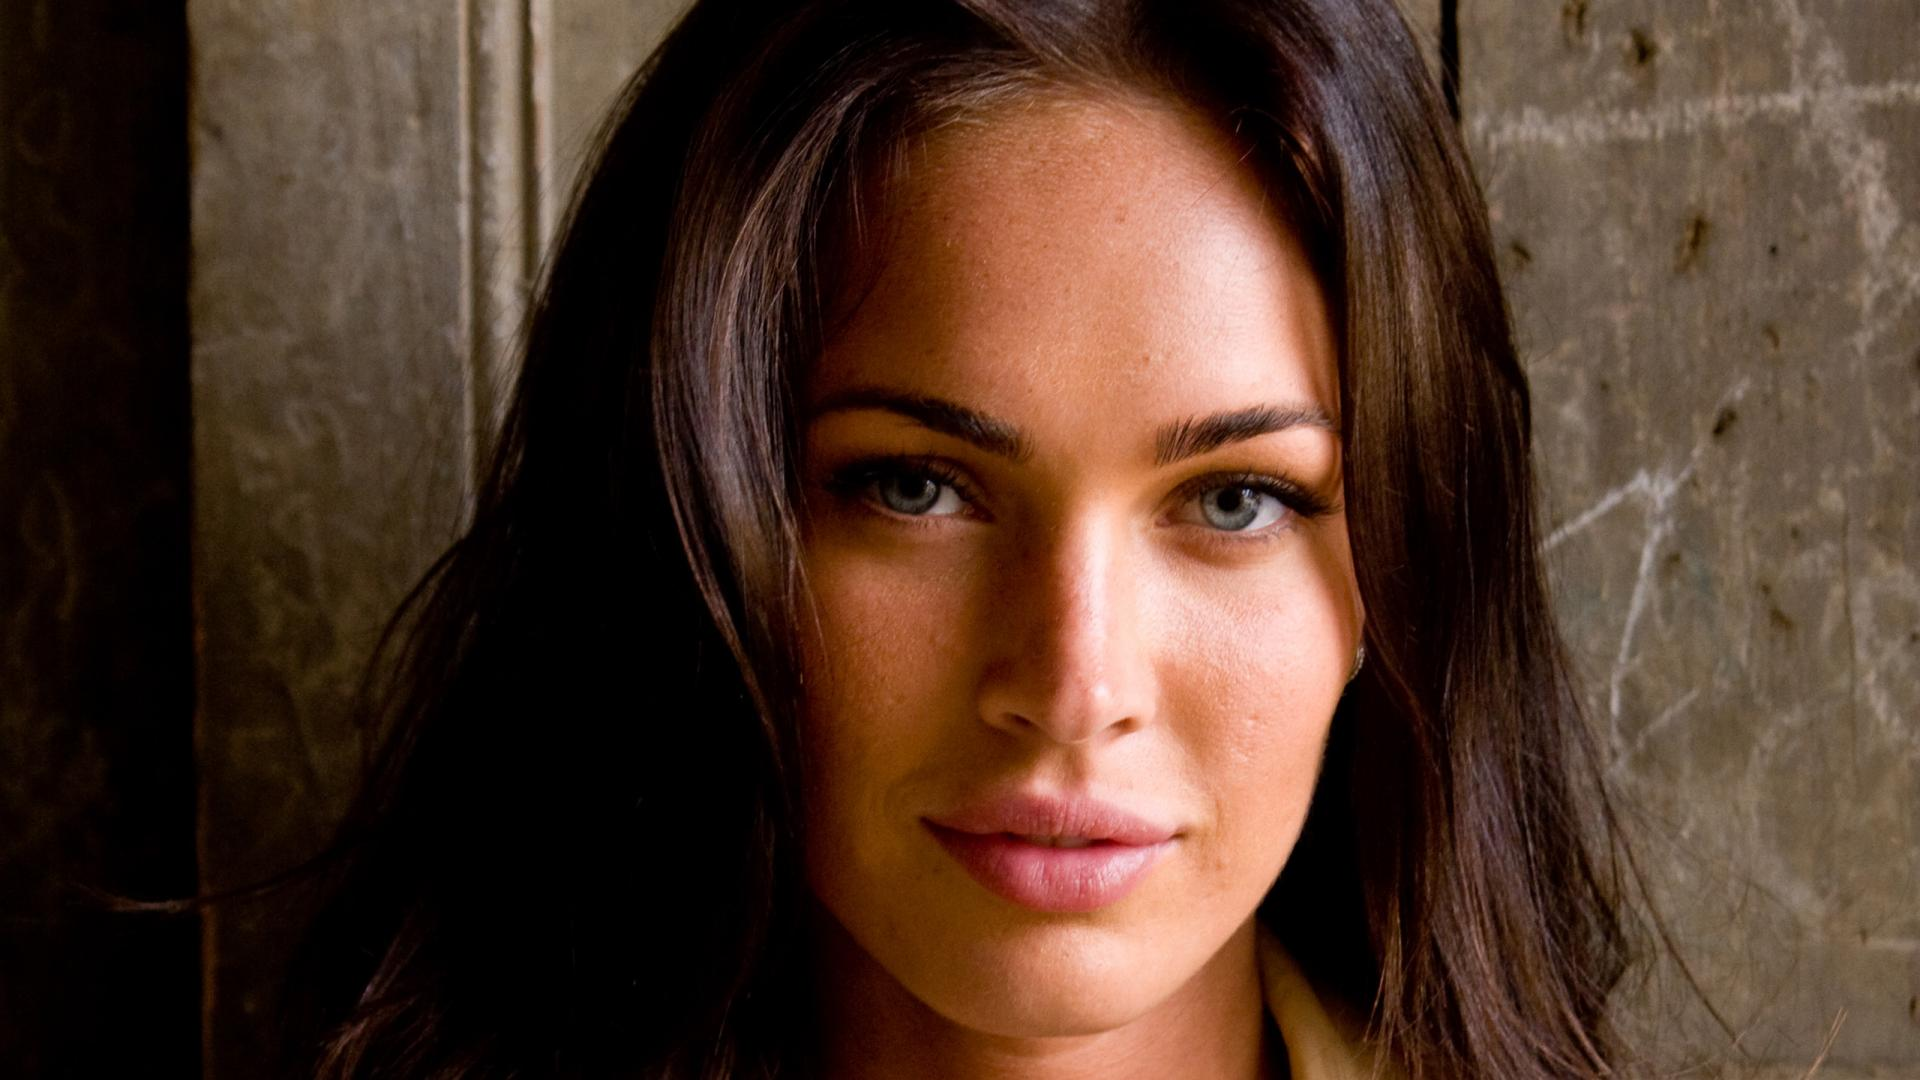 Megan Fox wallpaper 1080p Unique HD Wallpapers 1920x1080